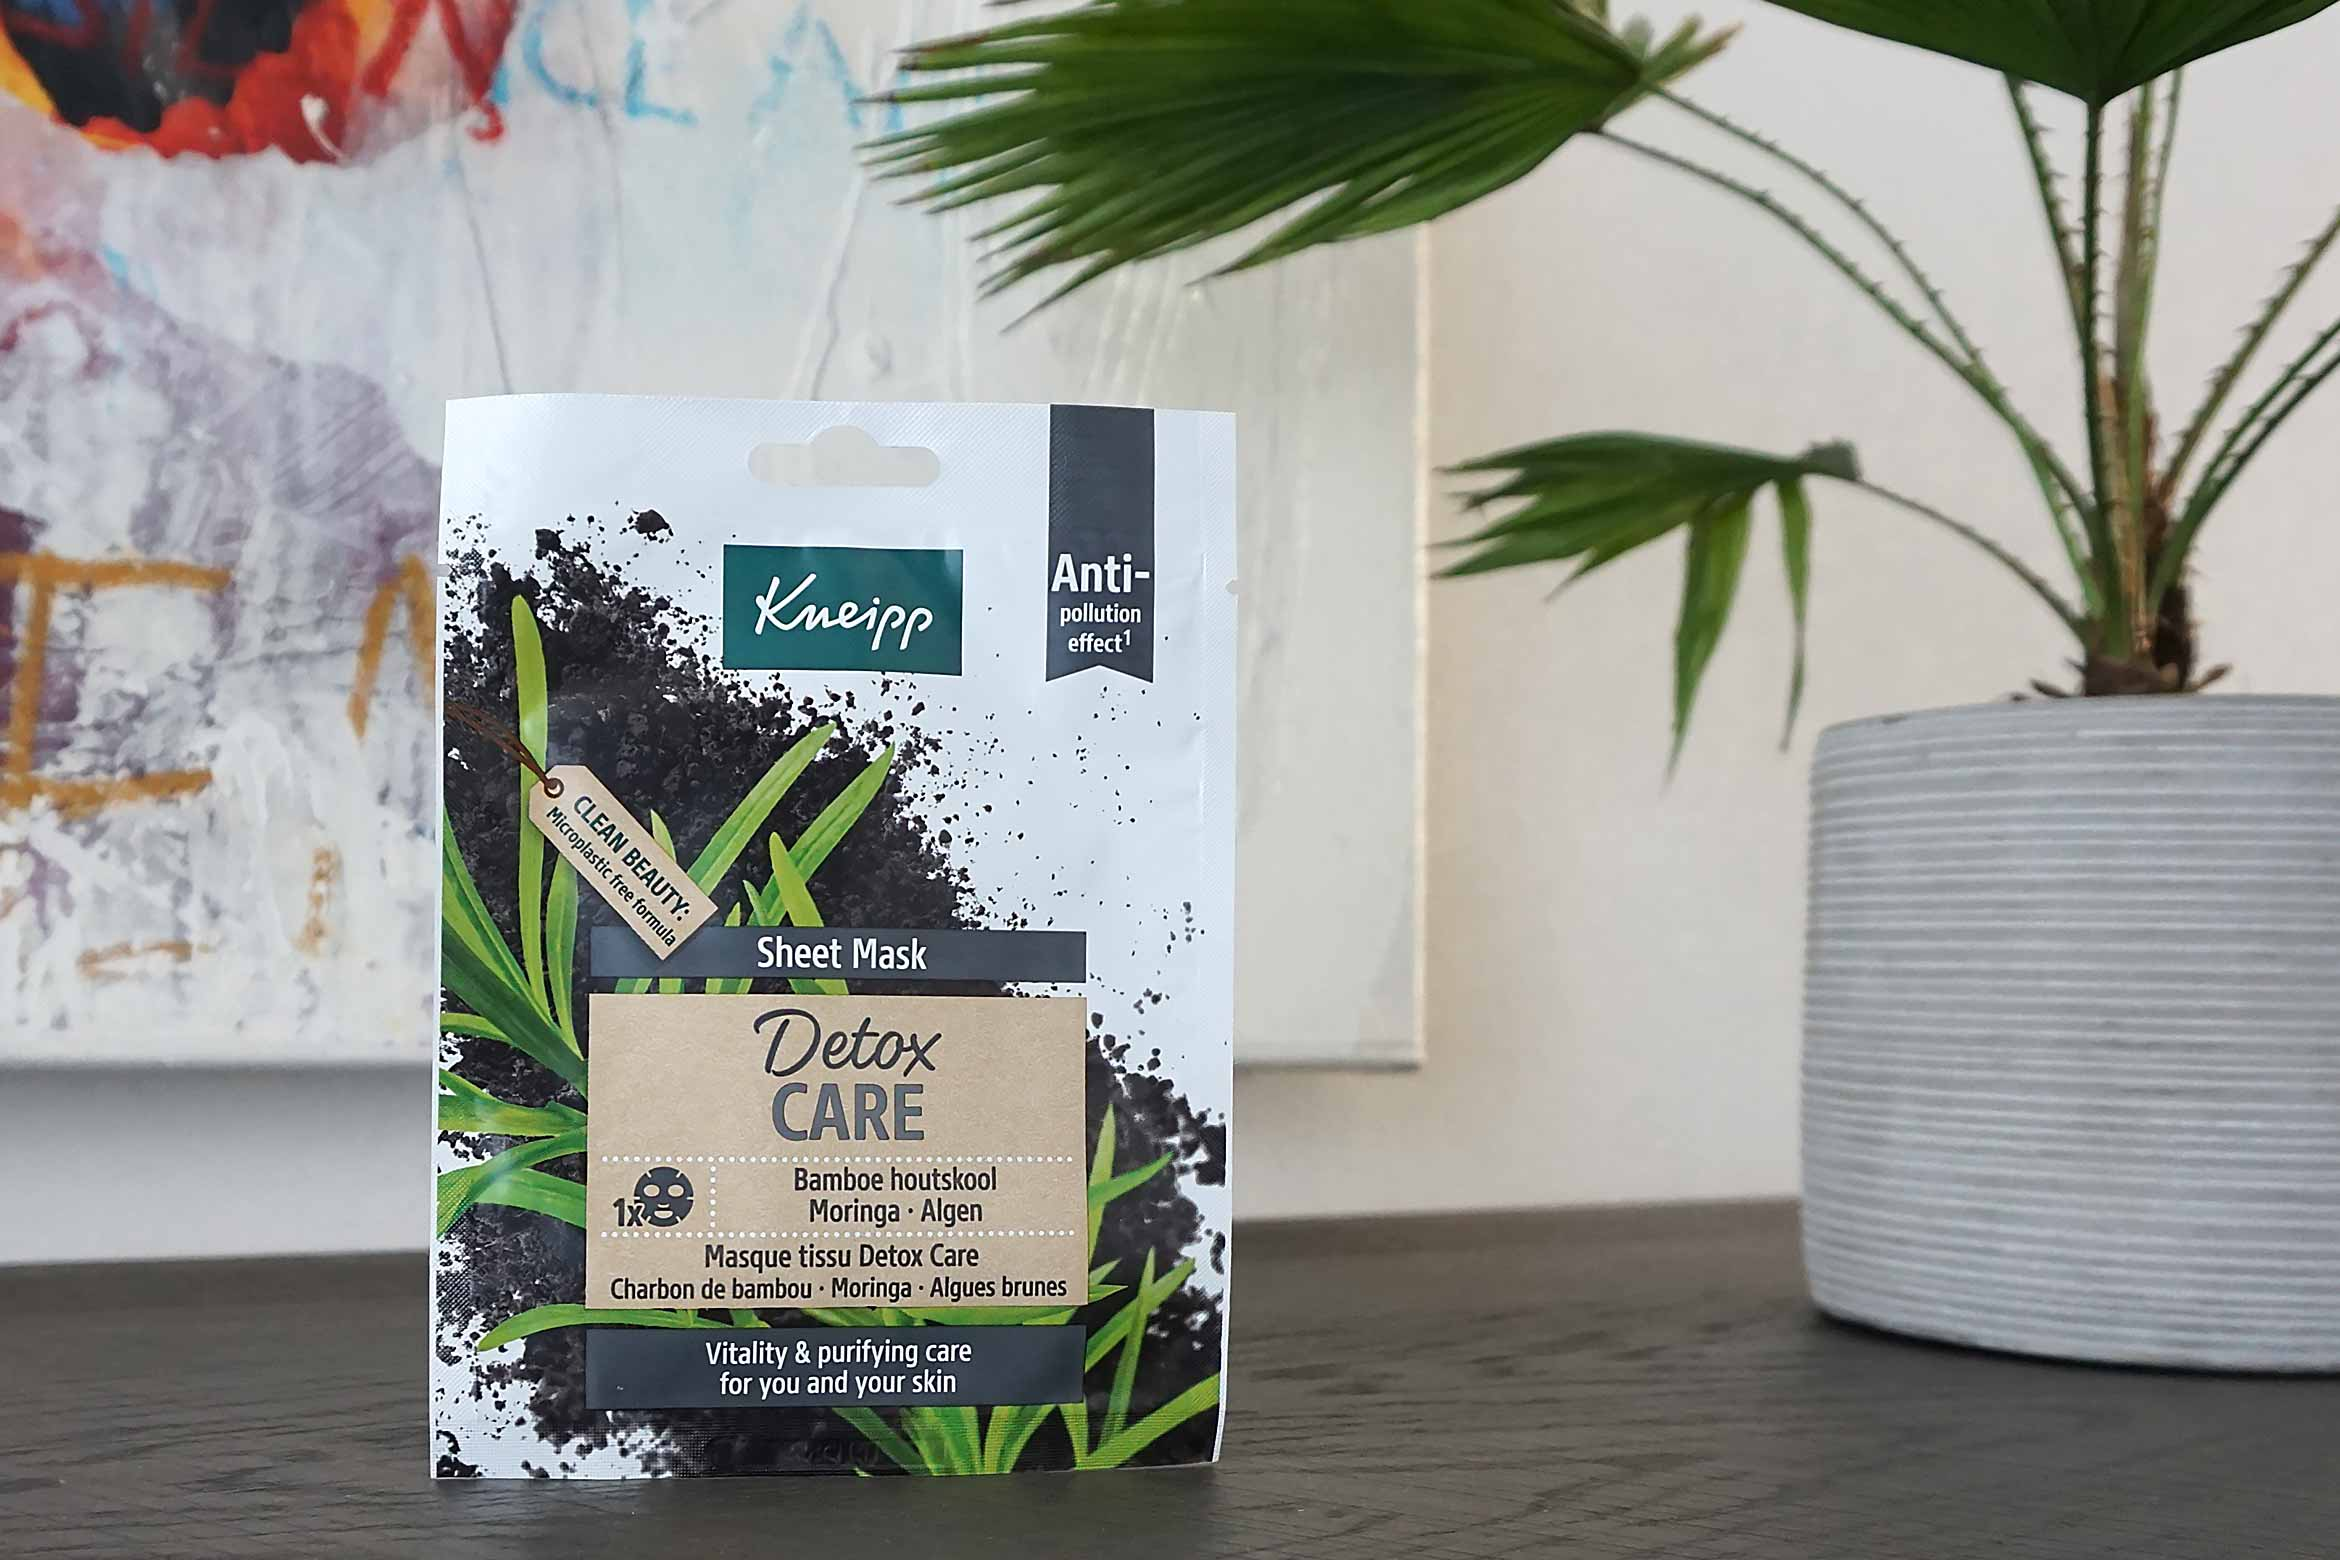 kneipp sheet mask detox care review